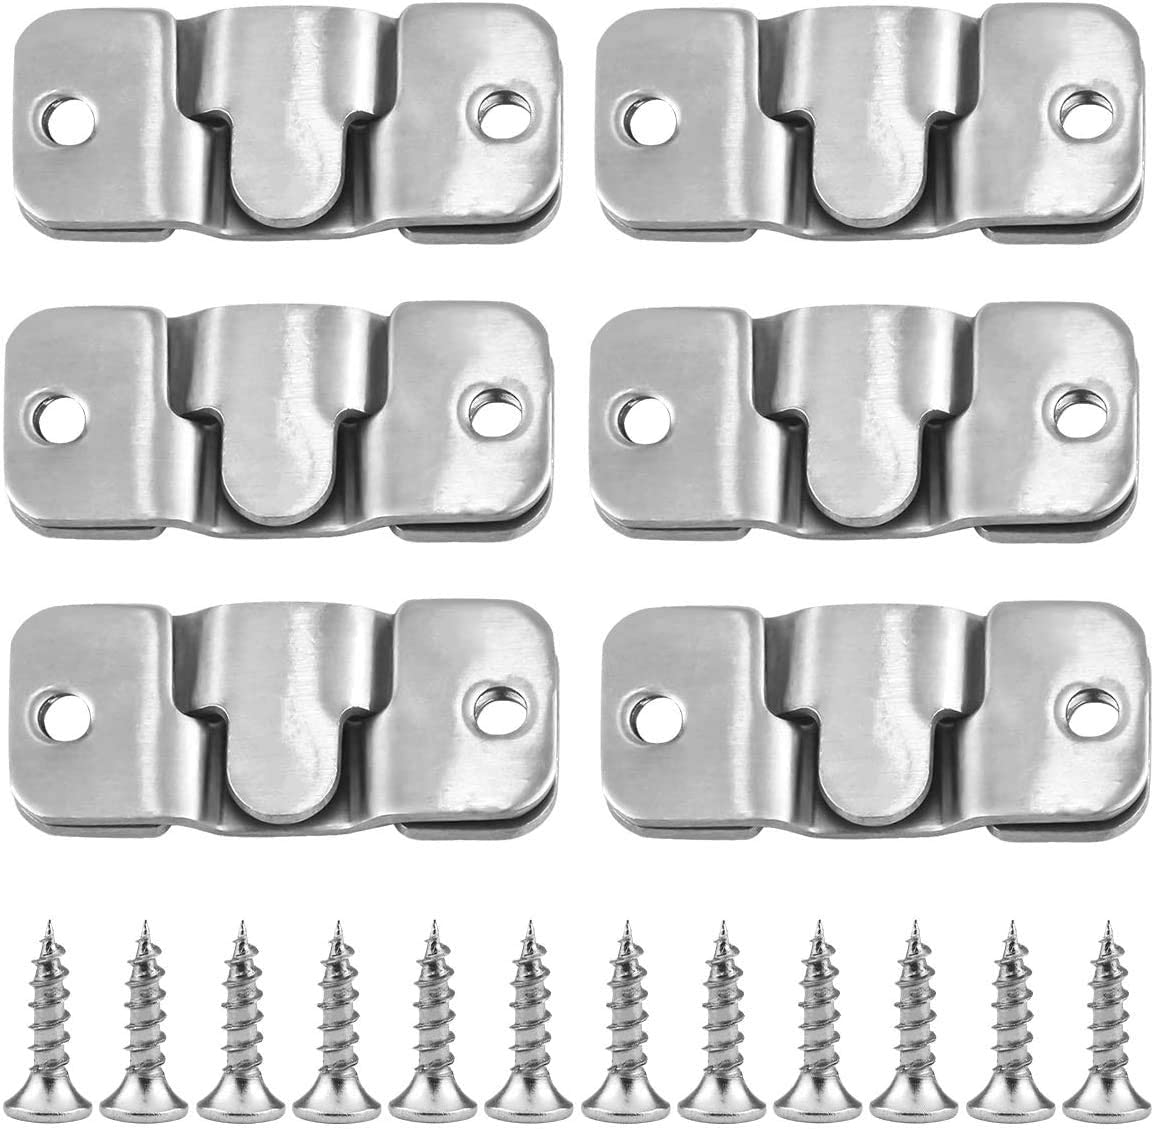 12pcs Flush Mount Bracket, 45x20mm Interlocking Picture Frame Hook, Stainless Steel Picture Bracket, Z Clip Photo Wall Mount Connector for Furniture Photo Hardware Mirrors